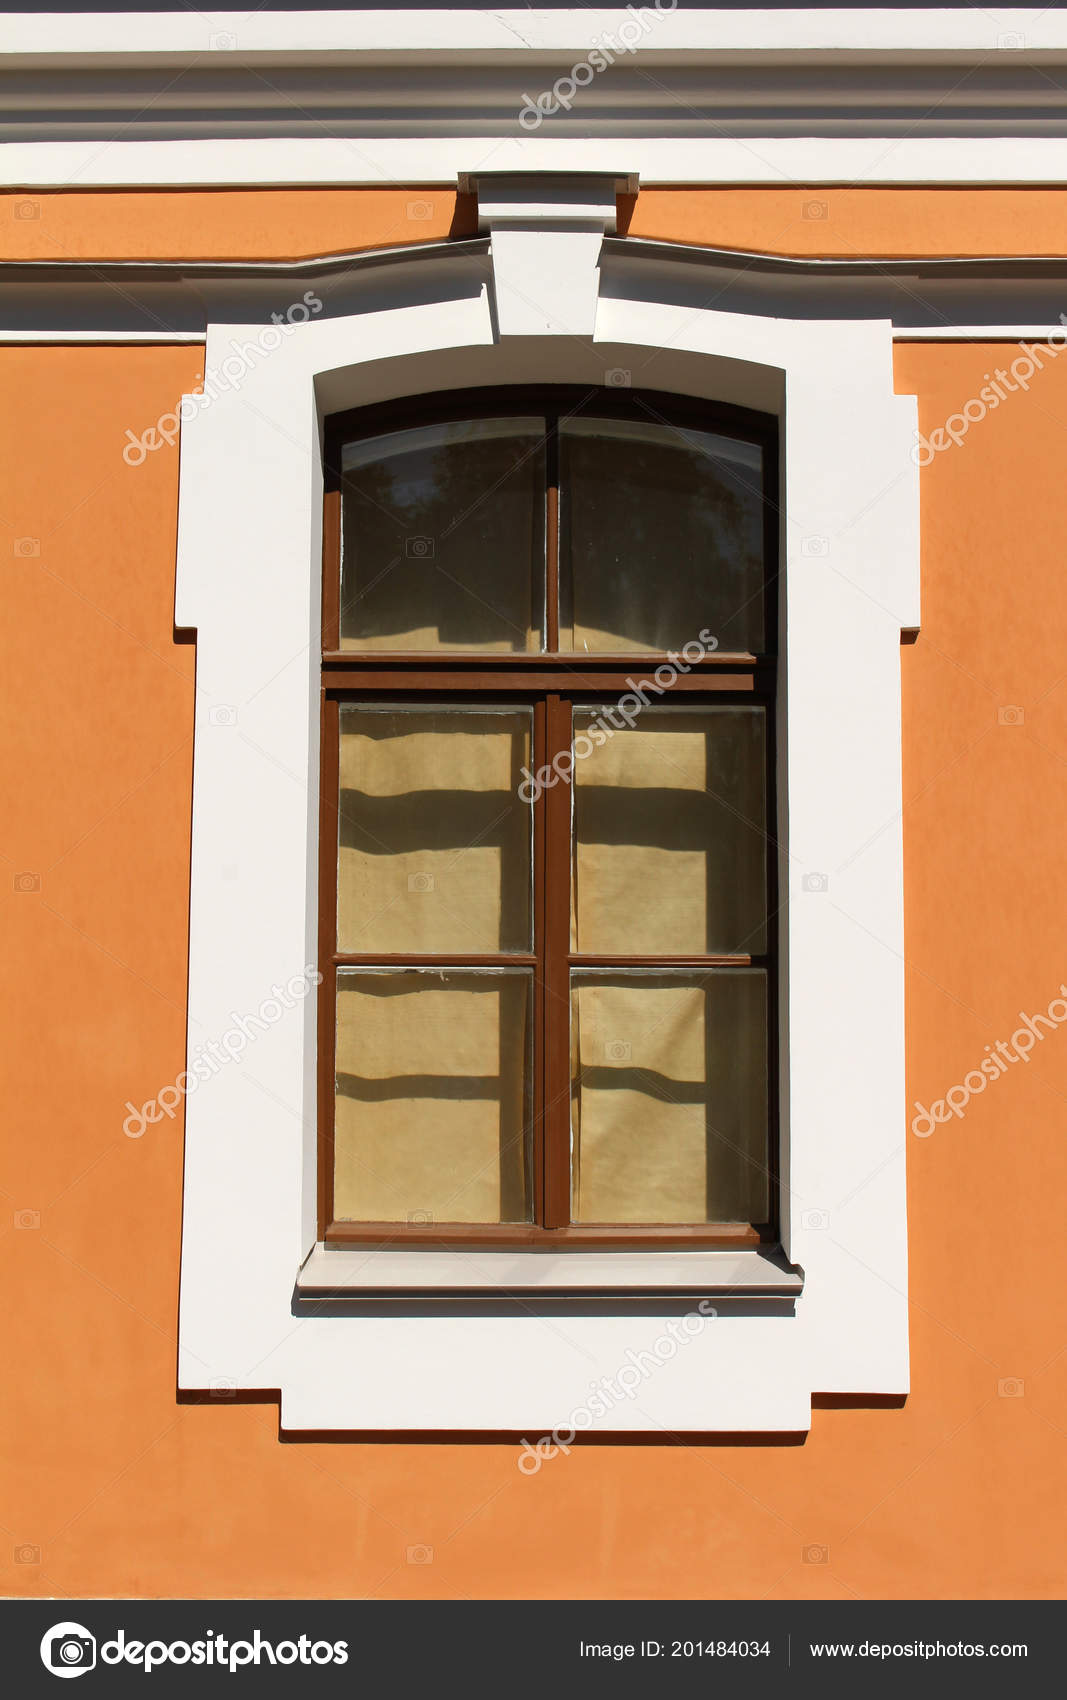 Groovy Windows Doors Wall Old House Stock Photo C Grynold 201484034 Download Free Architecture Designs Embacsunscenecom